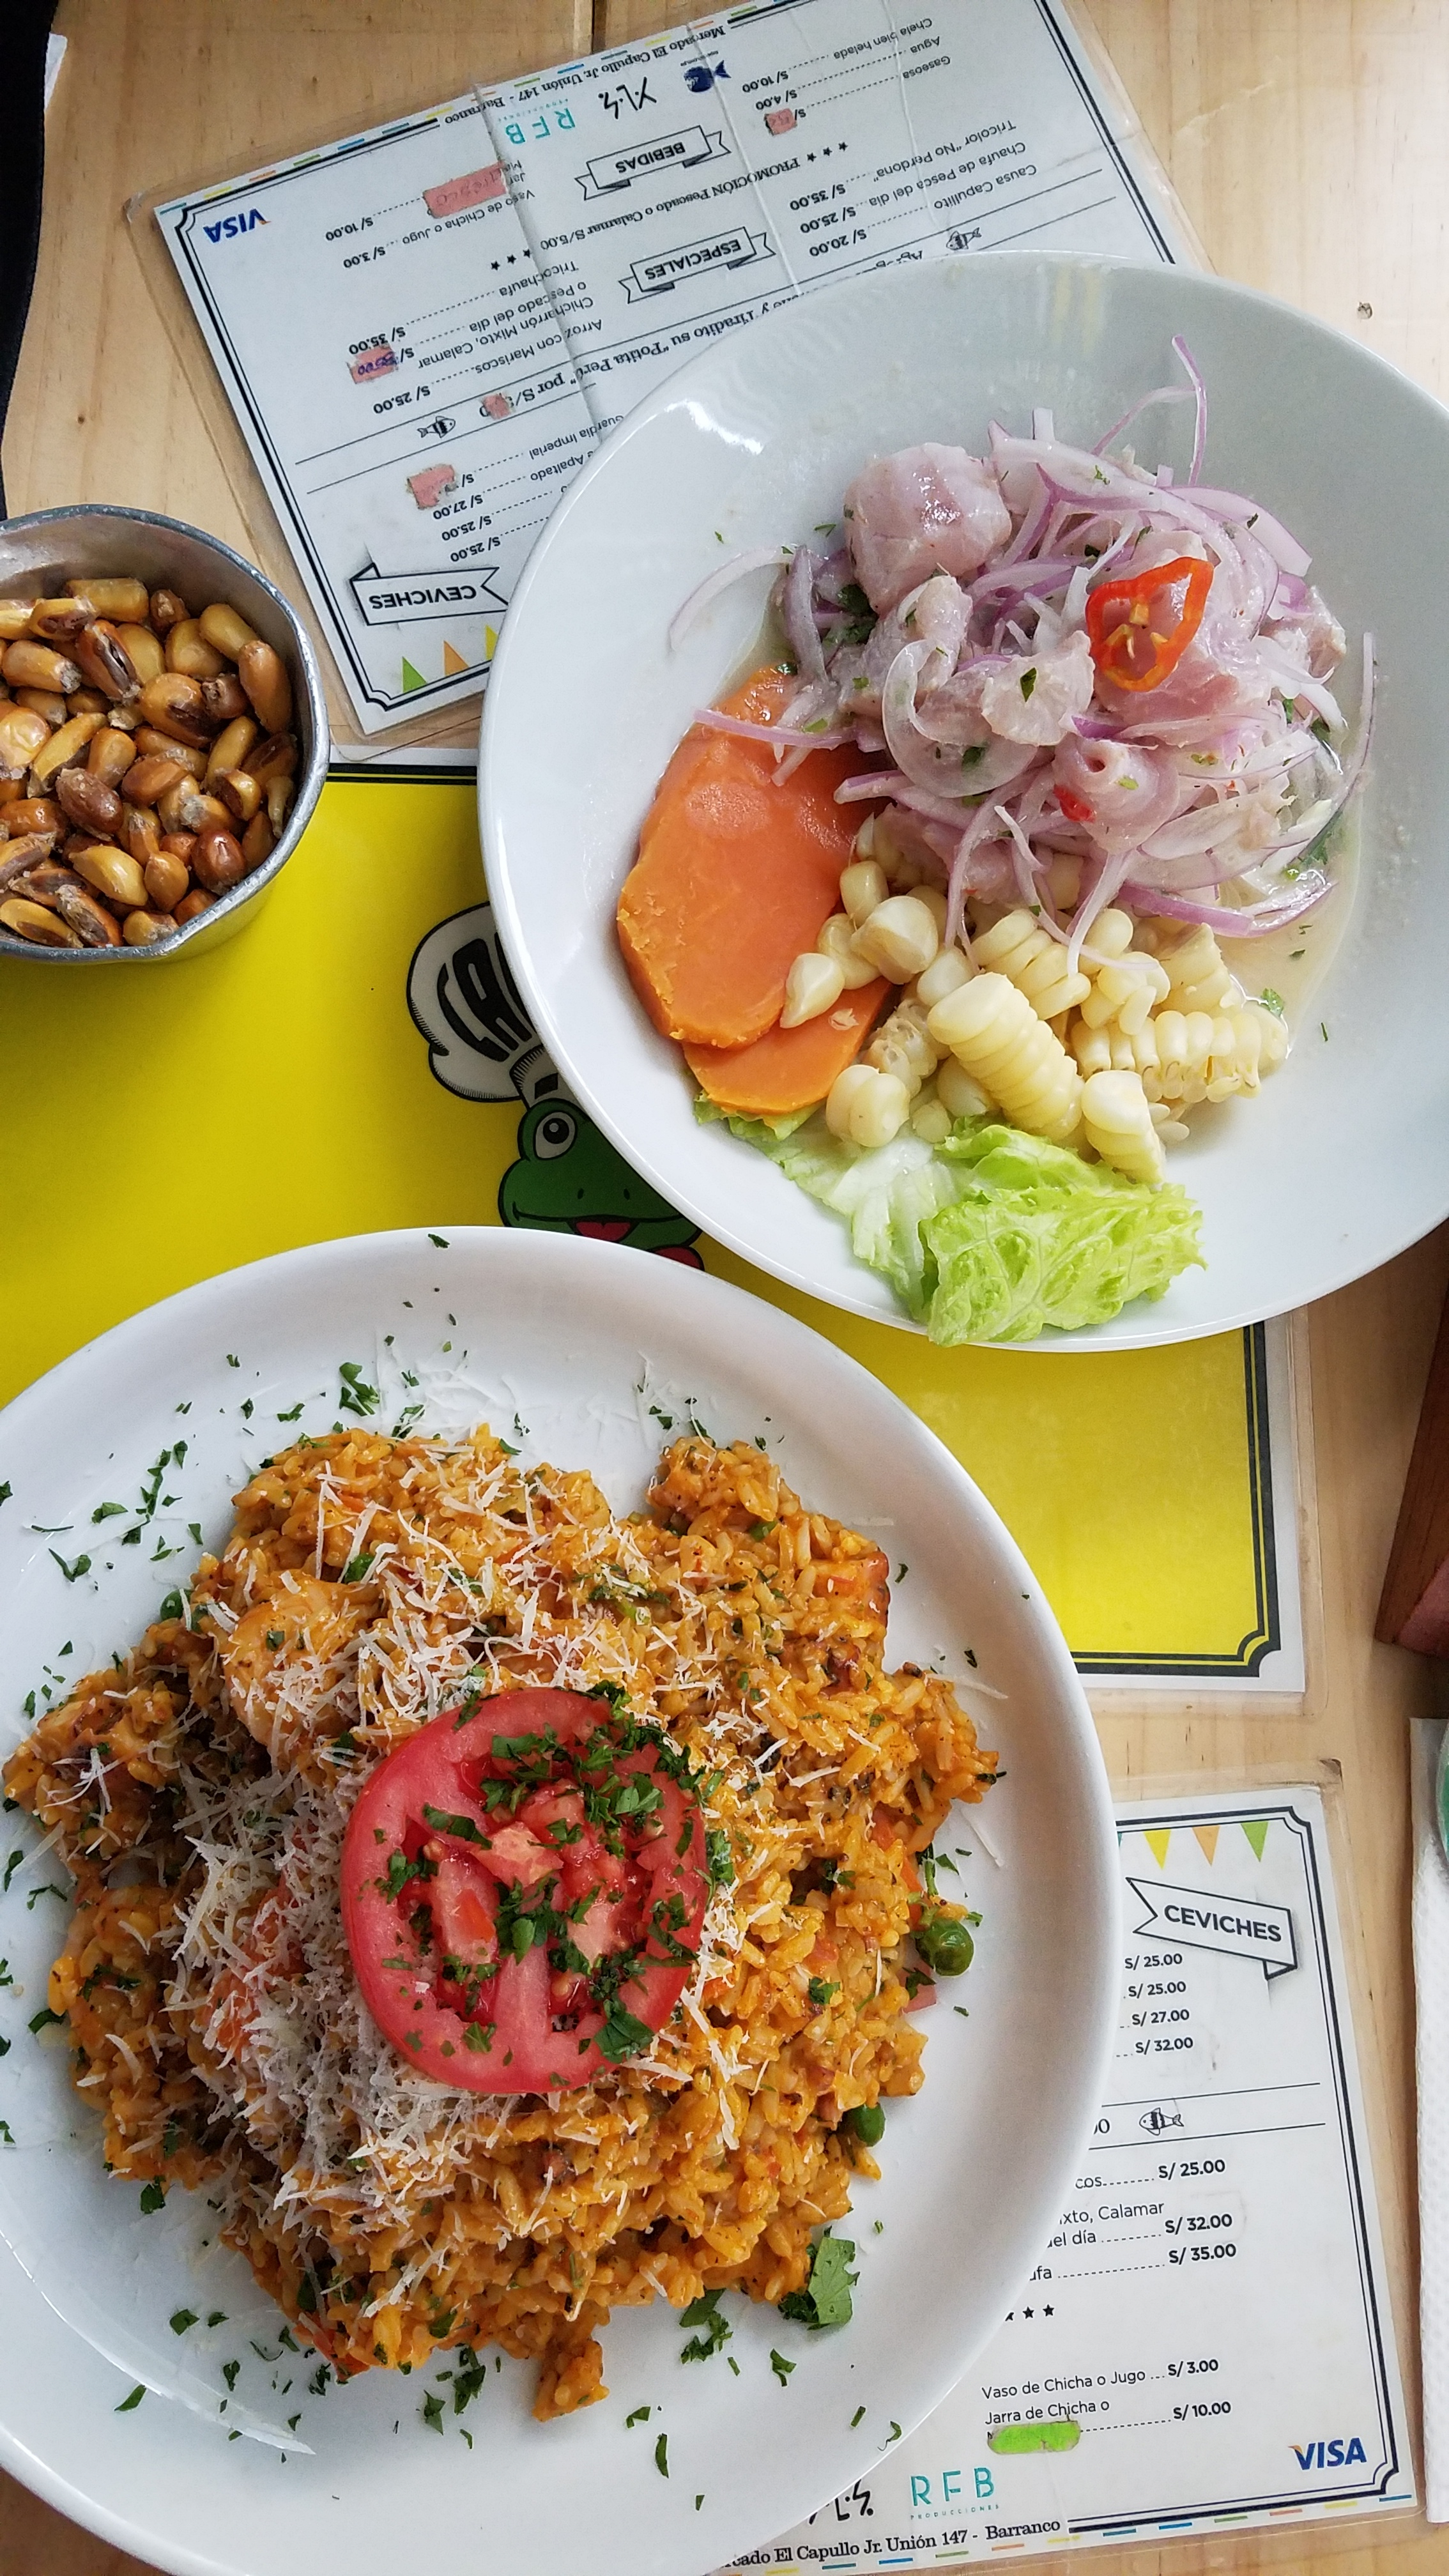 Tilapia Ceviche & A Paella type dish of Shrimp and Octopus